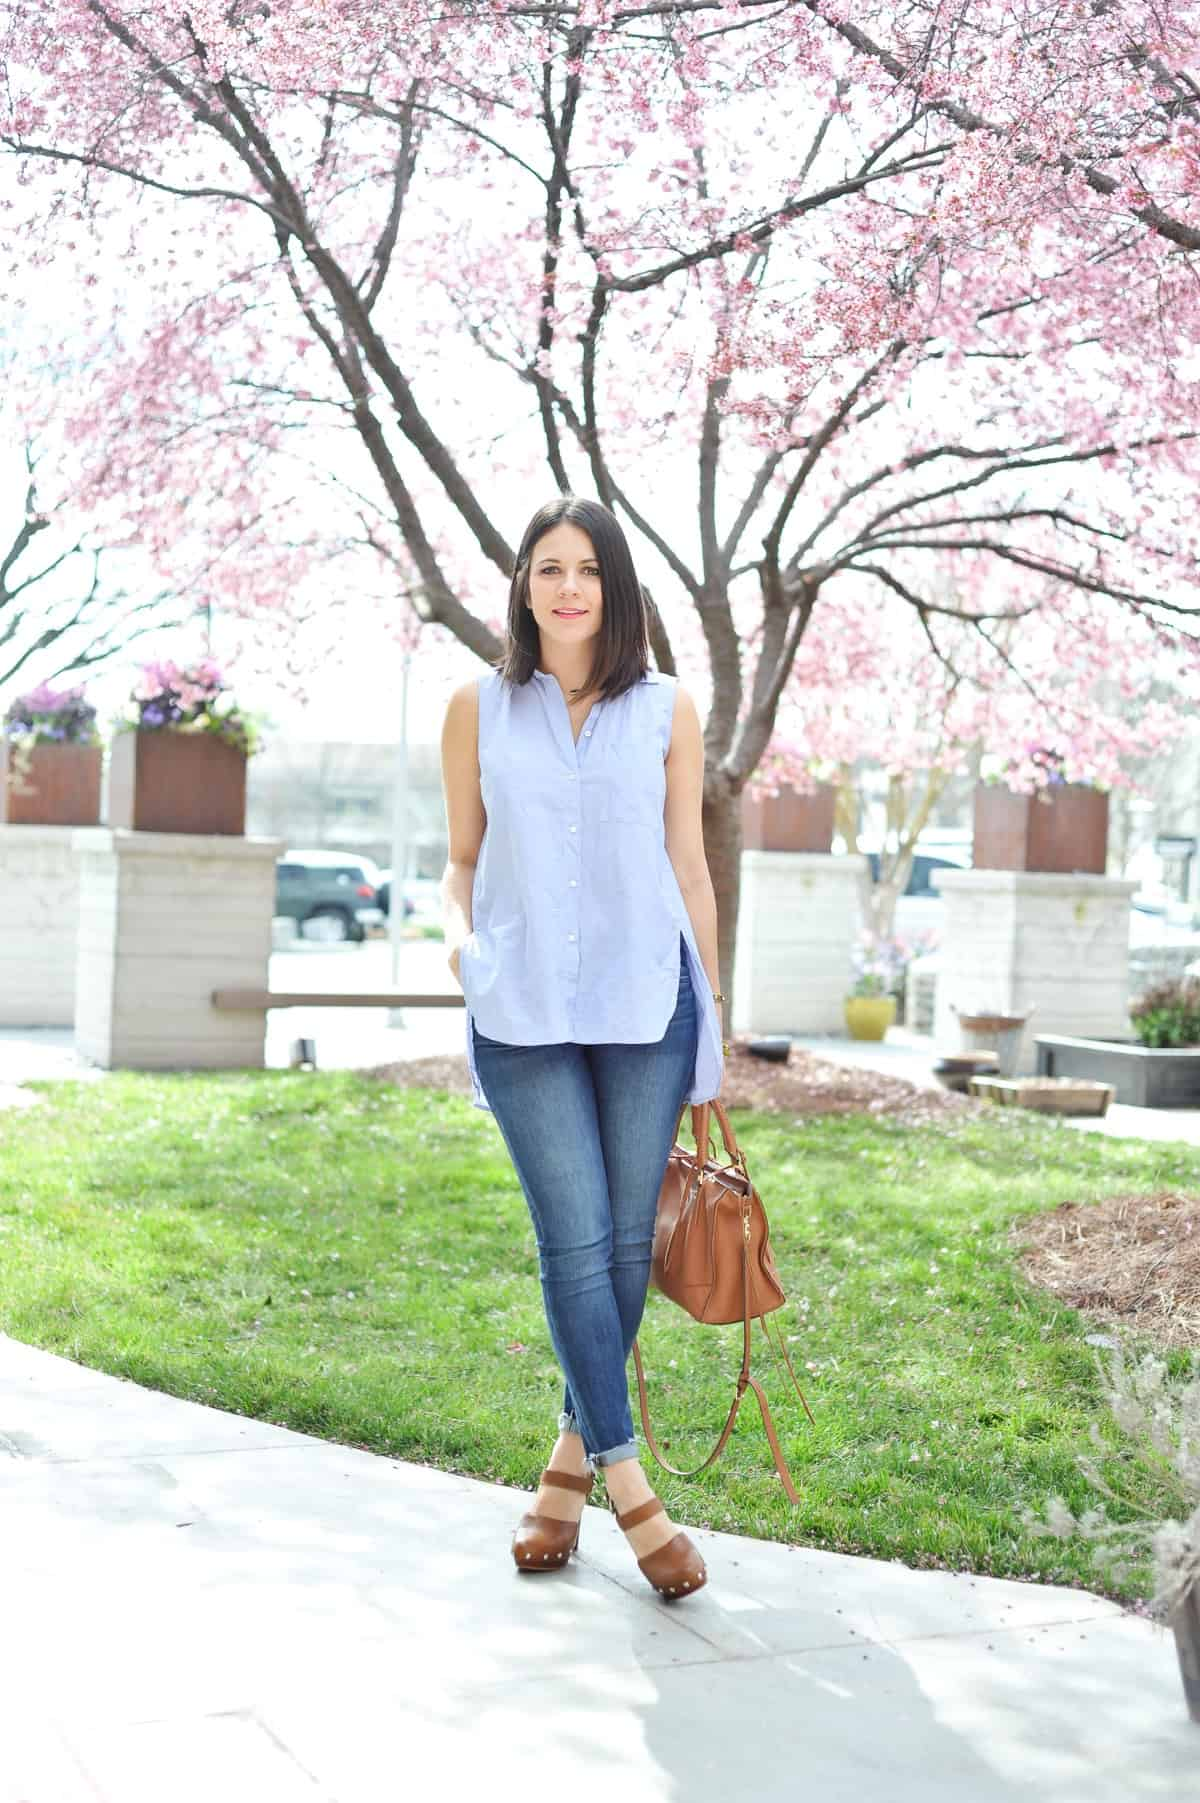 Vince Camuto Elric Shoe for spring - My Style Vita - @mystylevita - 13